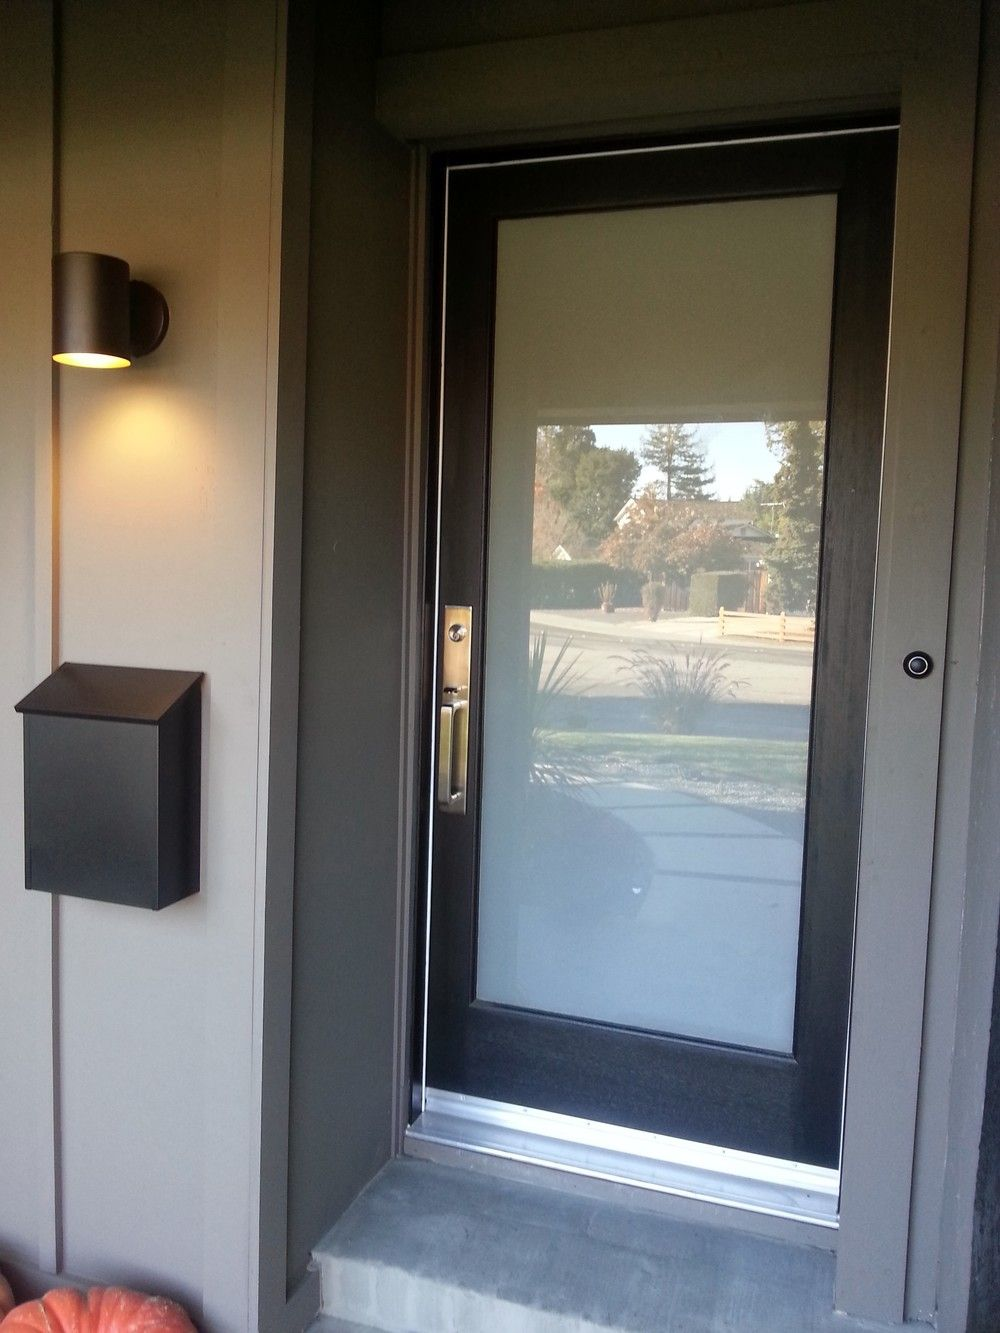 Attrayant New Laminated Glass Panel Front Door With Lovely Hardware, New Lighting,  Mailbox And Board And Baton Siding To Cover The Old Brick, Which U2026